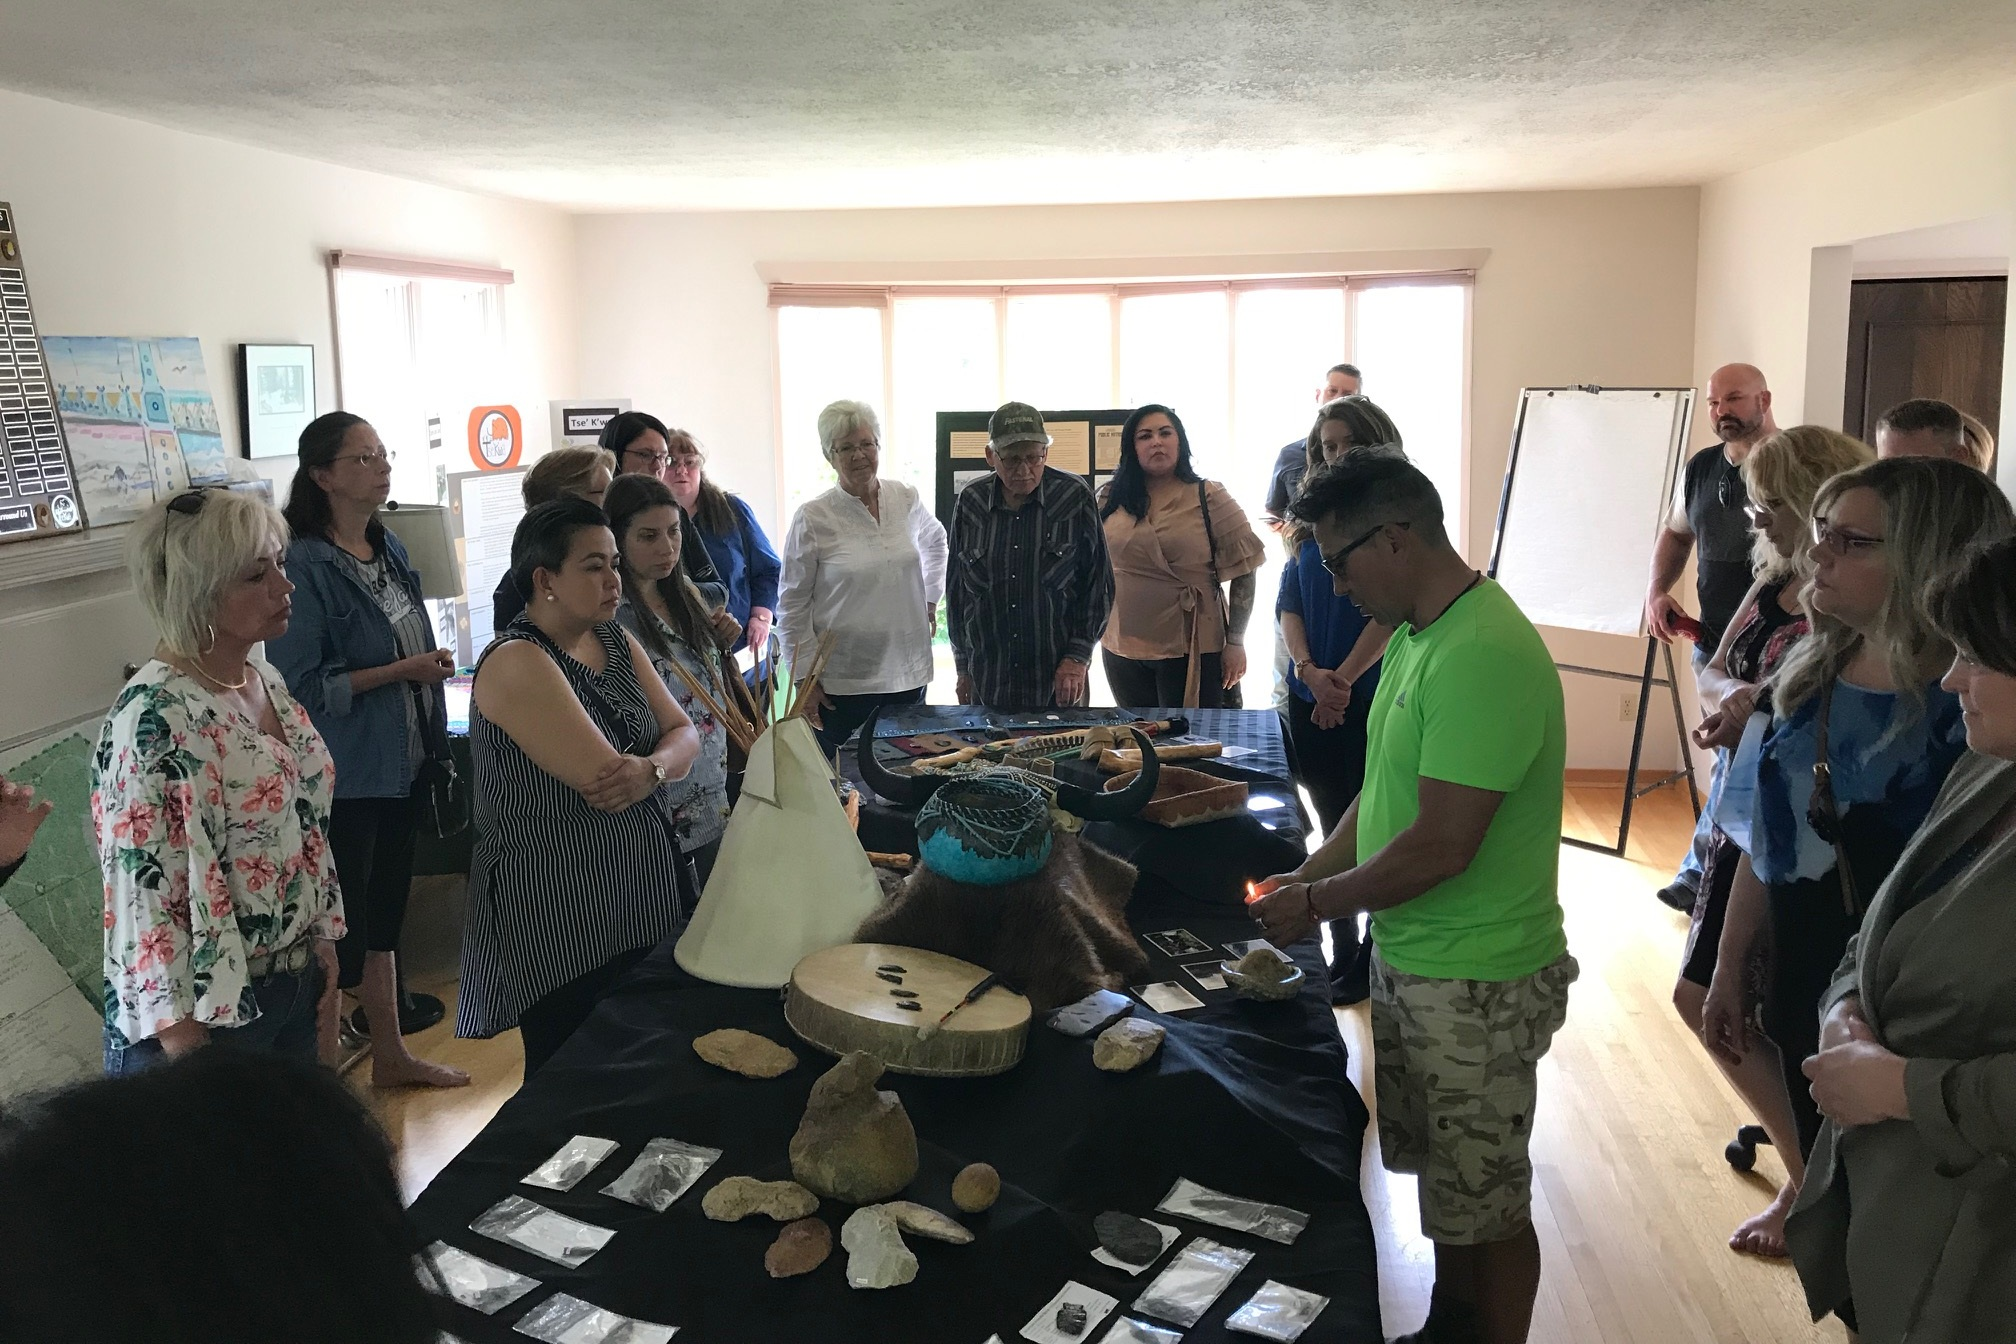 Garry Oker of Doig River First Nation presenting artefacts at Tse'K'wa.